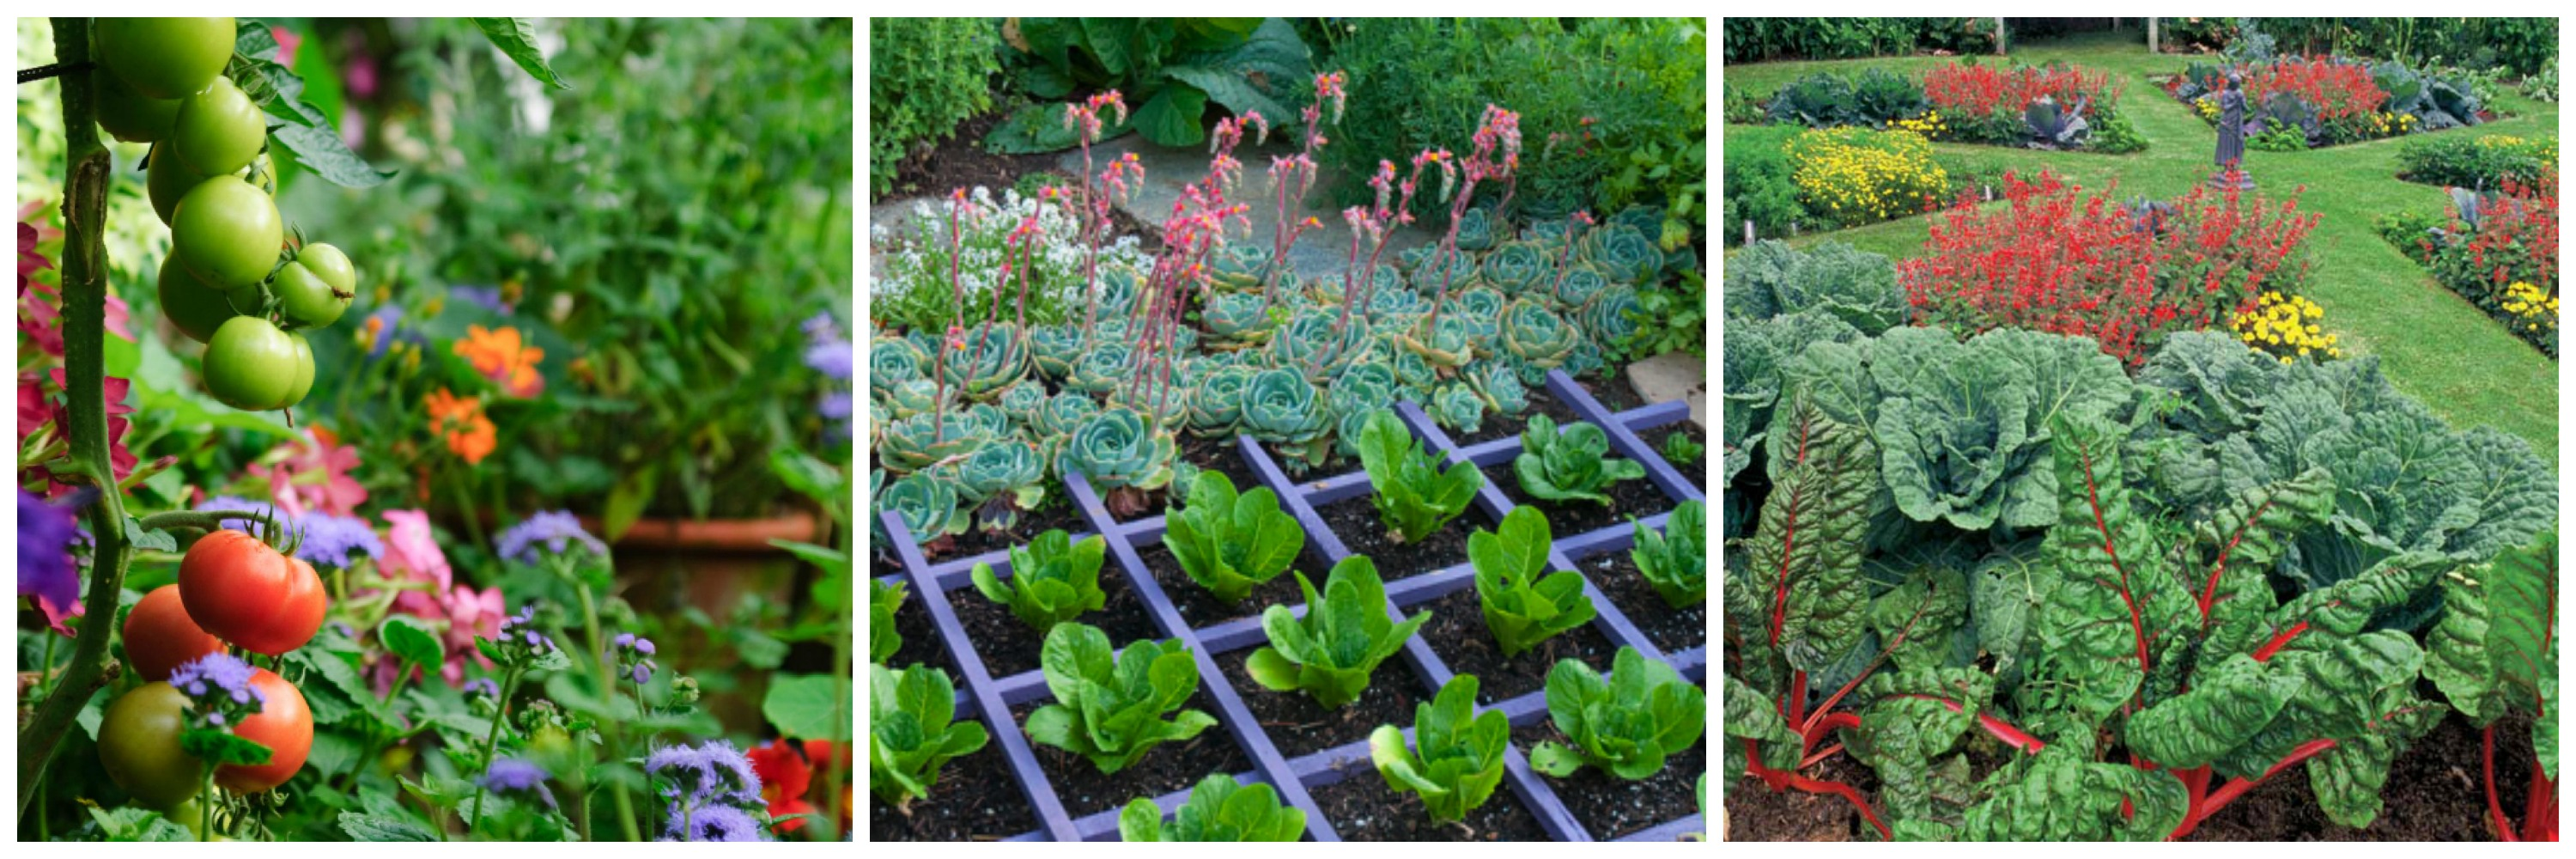 Creative environments landscape co edible gardens - Creative Environments Landscape Co Edible Gardens What Is Edible Landscaping Download